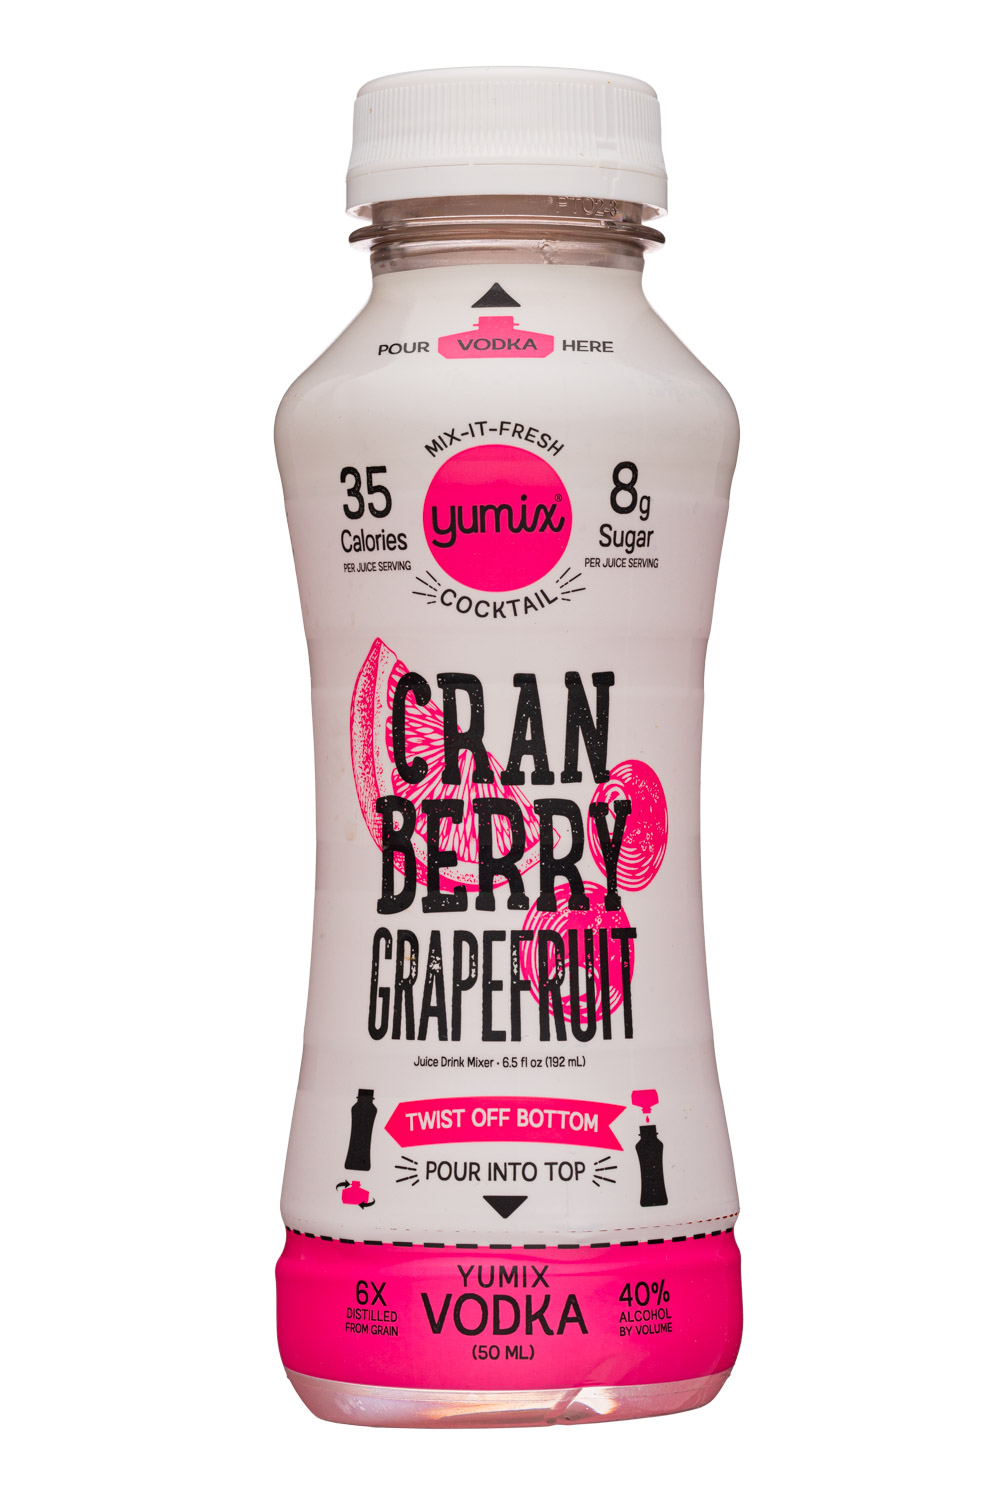 Cranberry Grapefruit